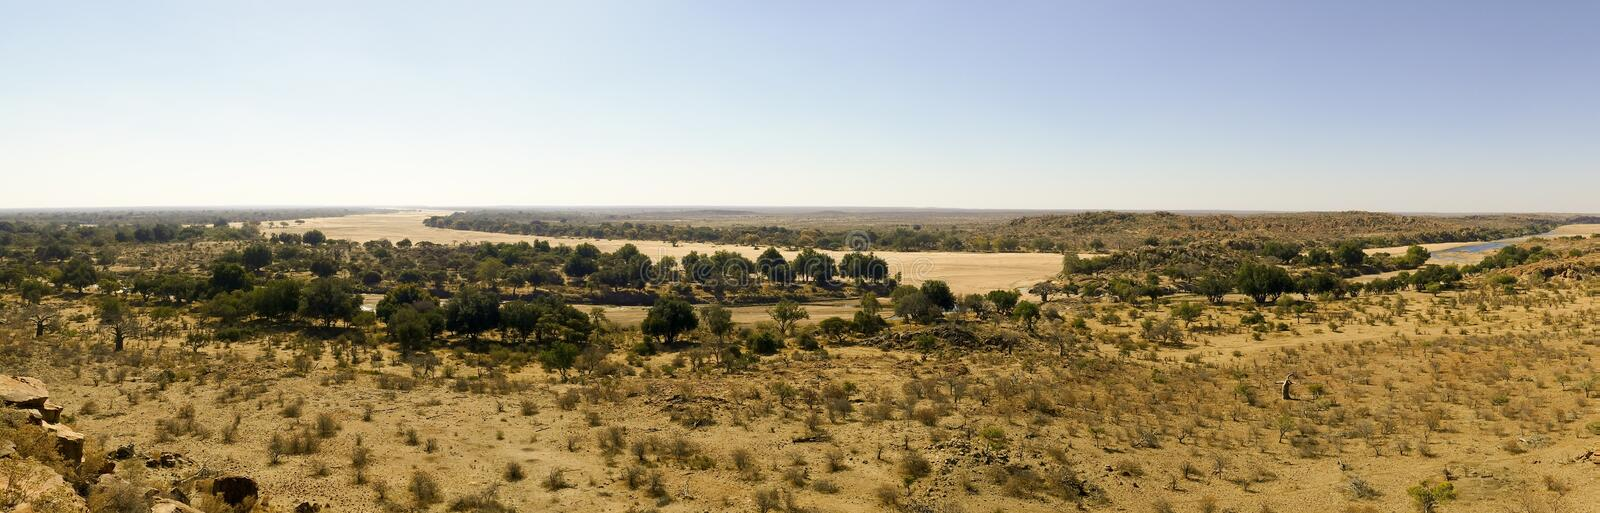 Limpopo river crossing the desert landscape of Mapungubwe Nation royalty free stock image